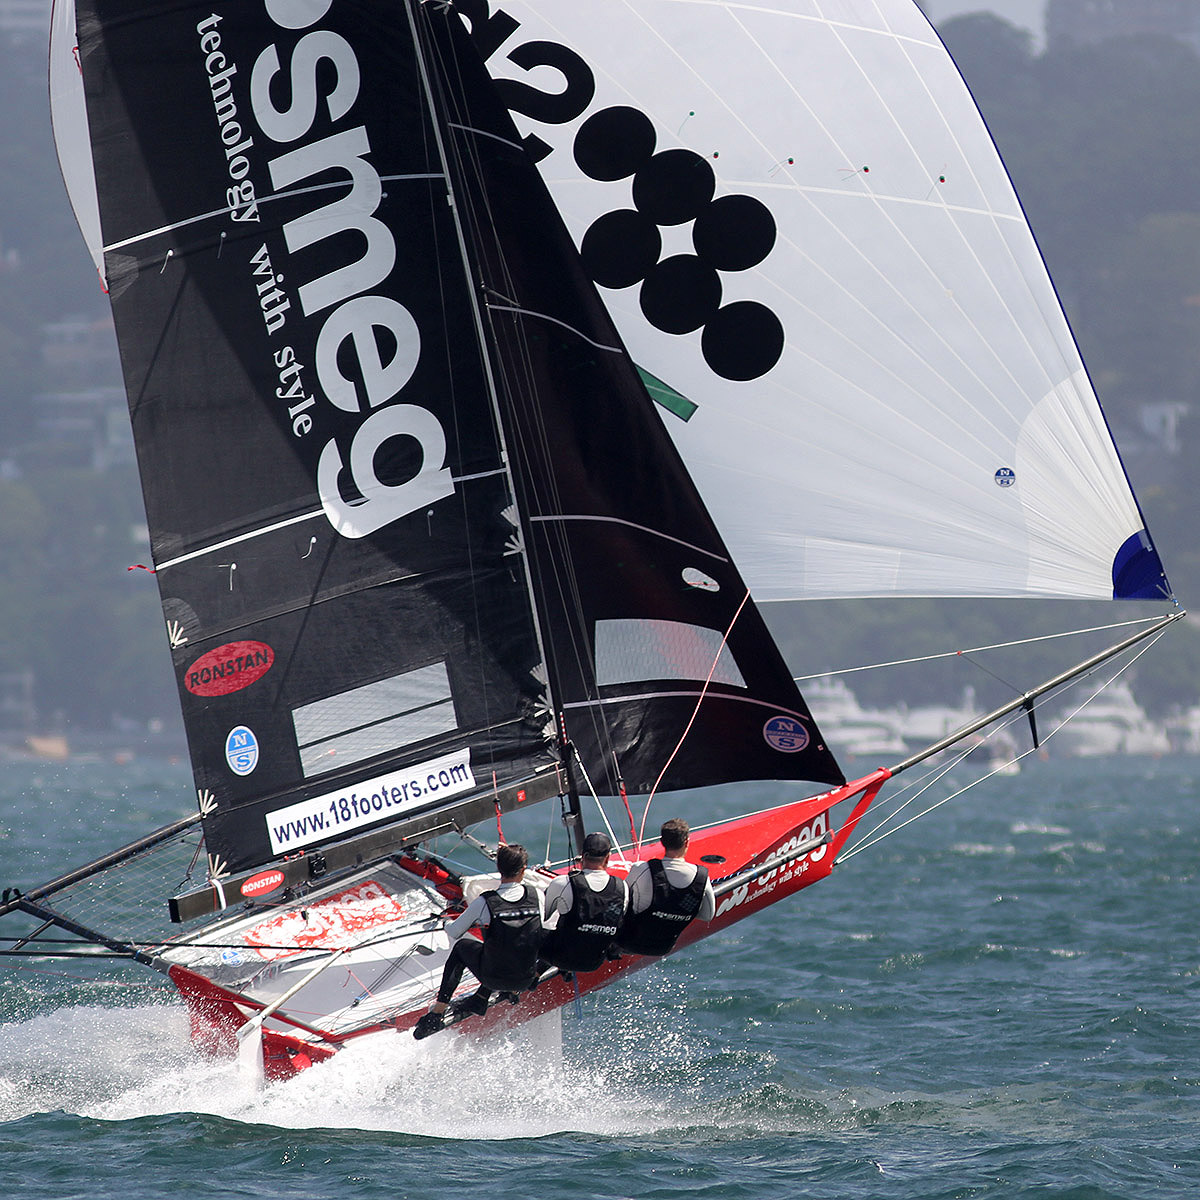 Brilliant exhibition of power sailing downwind by the Smeg crew. Photo Michael Chittenden/18 Footers.